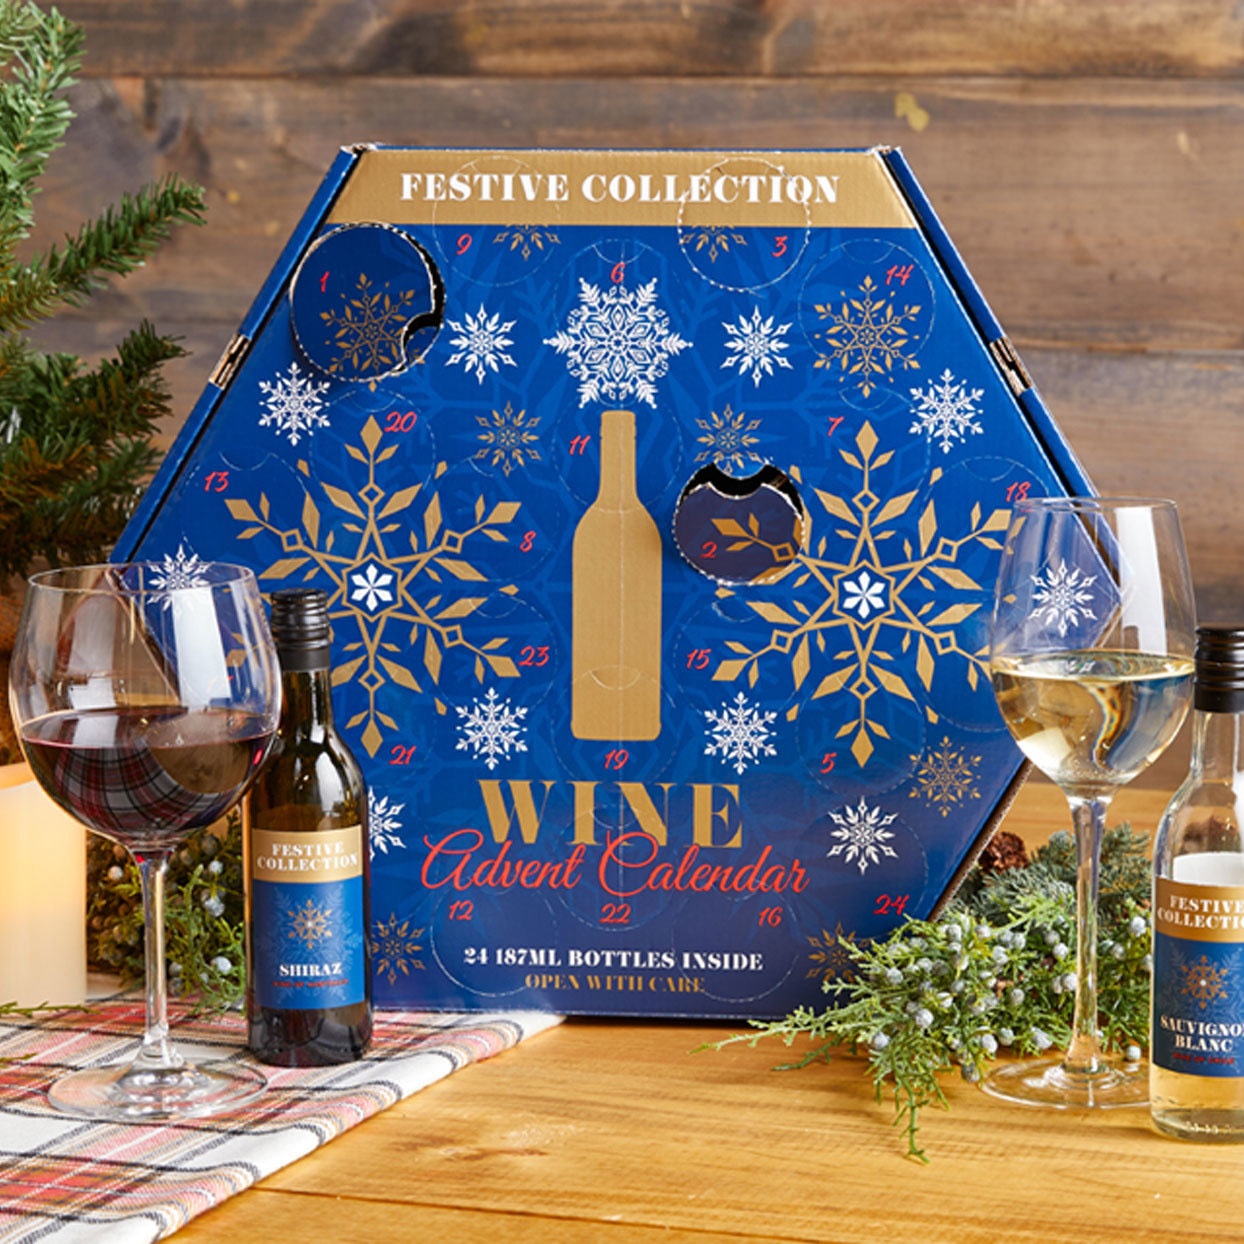 We Tried Aldi's Wine & Cheese Advent Calendars Before They Go on Sale Tomorrow—Here's What We Thought